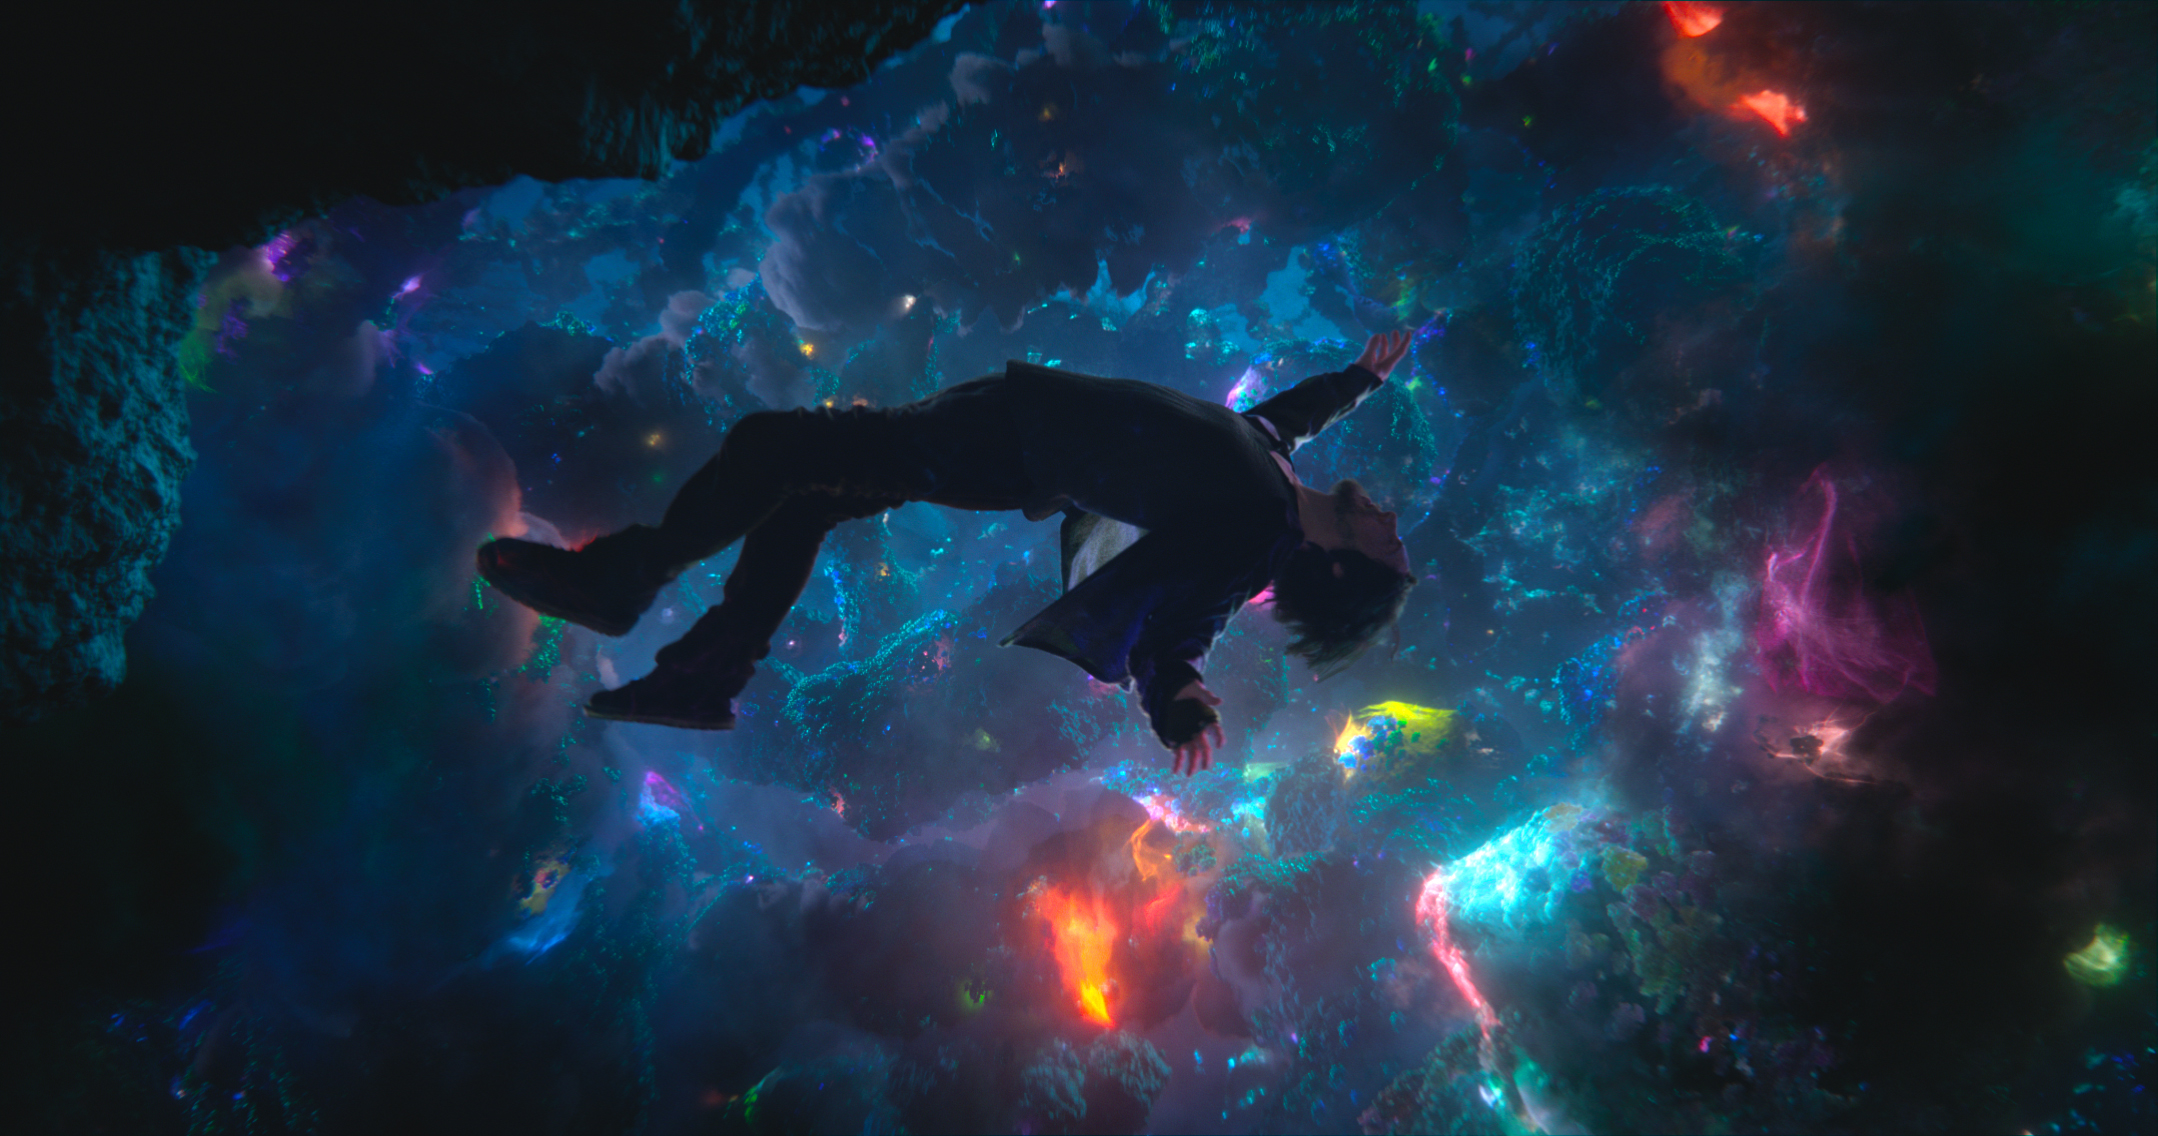 The Astral Plane is unlike anything we've seen before from the MCU, which is saying something.